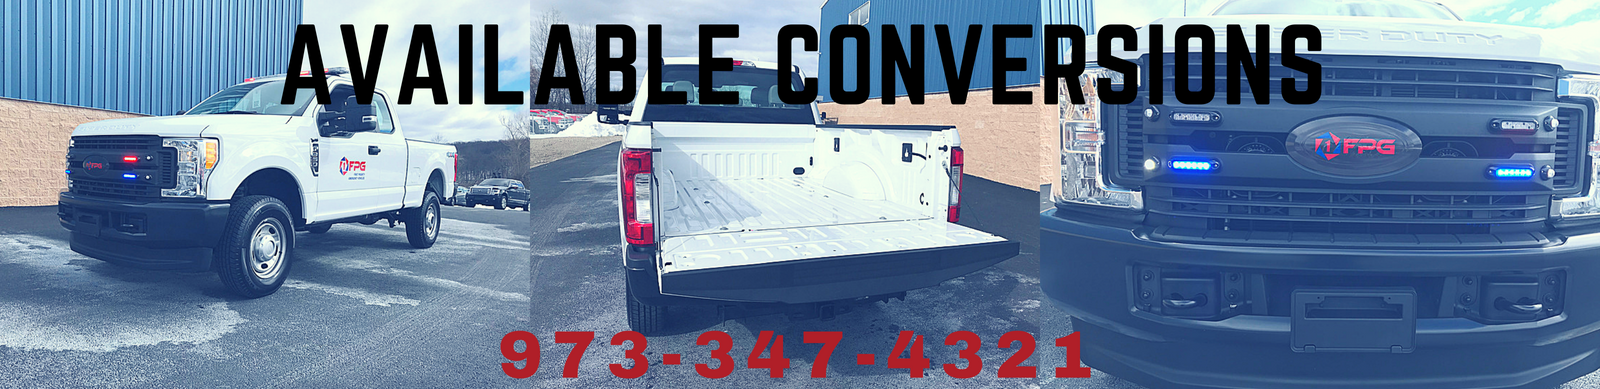 Available Conversions.png